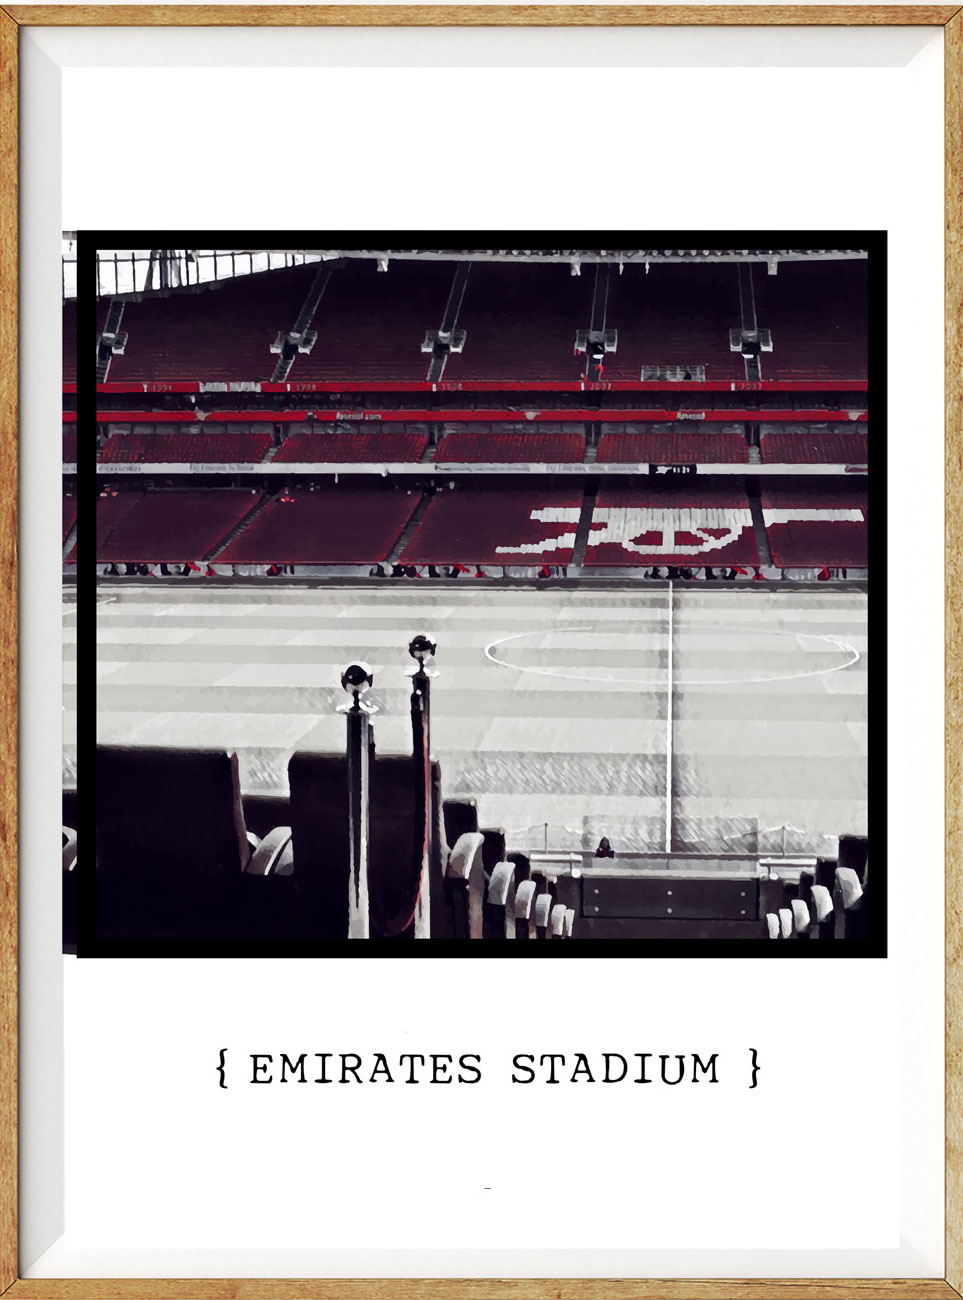 Emirates Stadium2